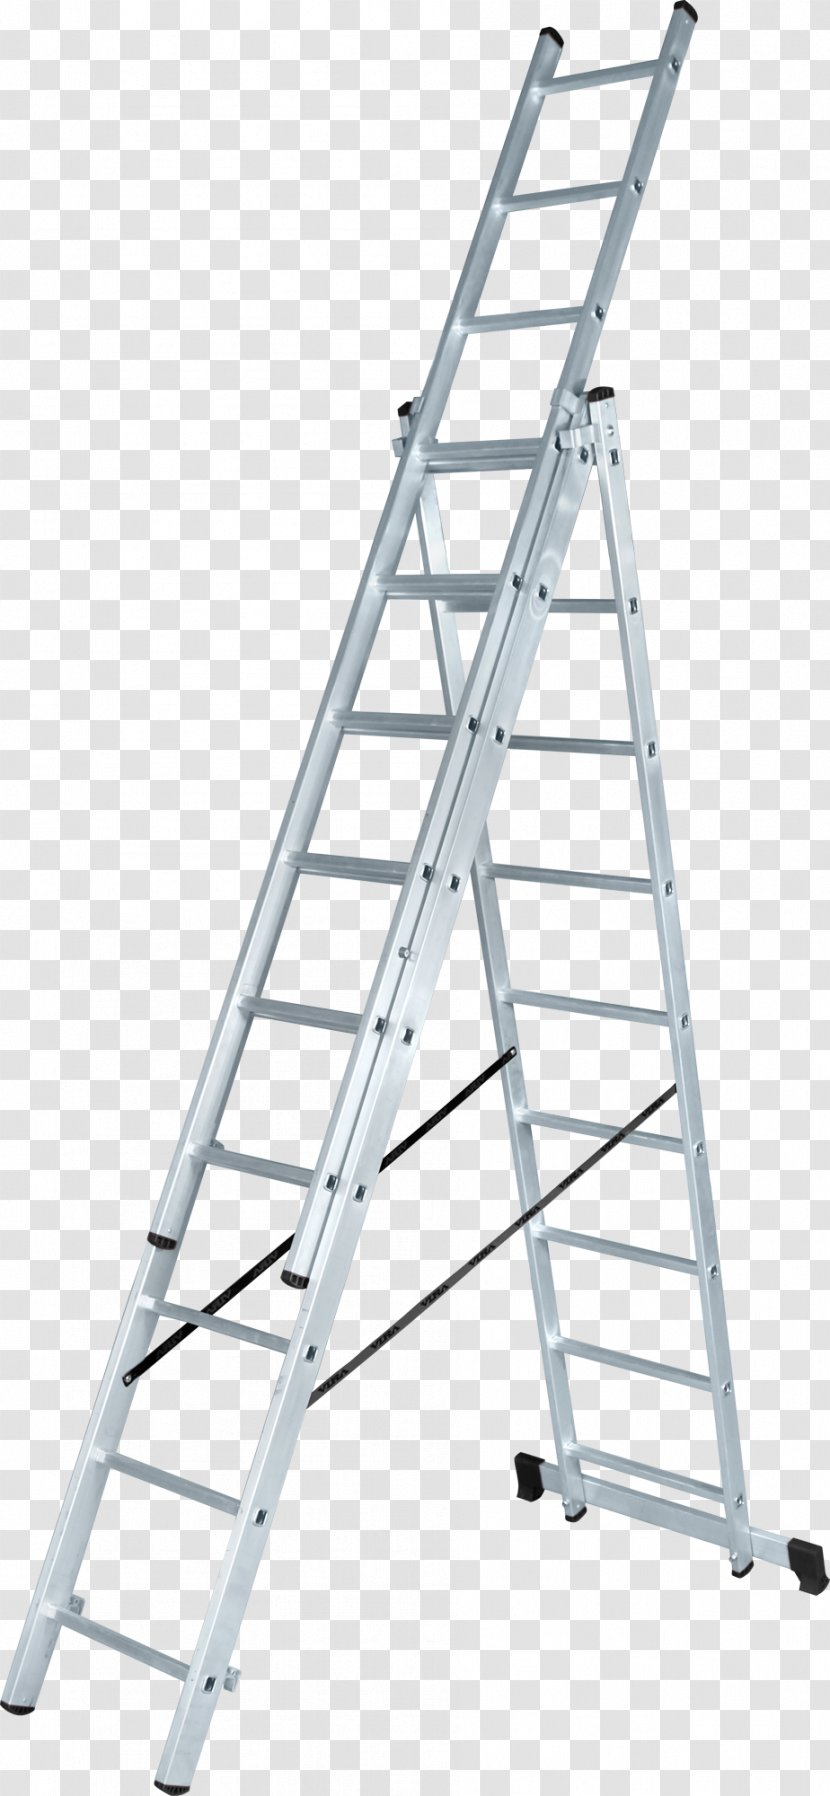 Ladder Stairs Wood Scaffolding Escabeau Structure Transparent Png